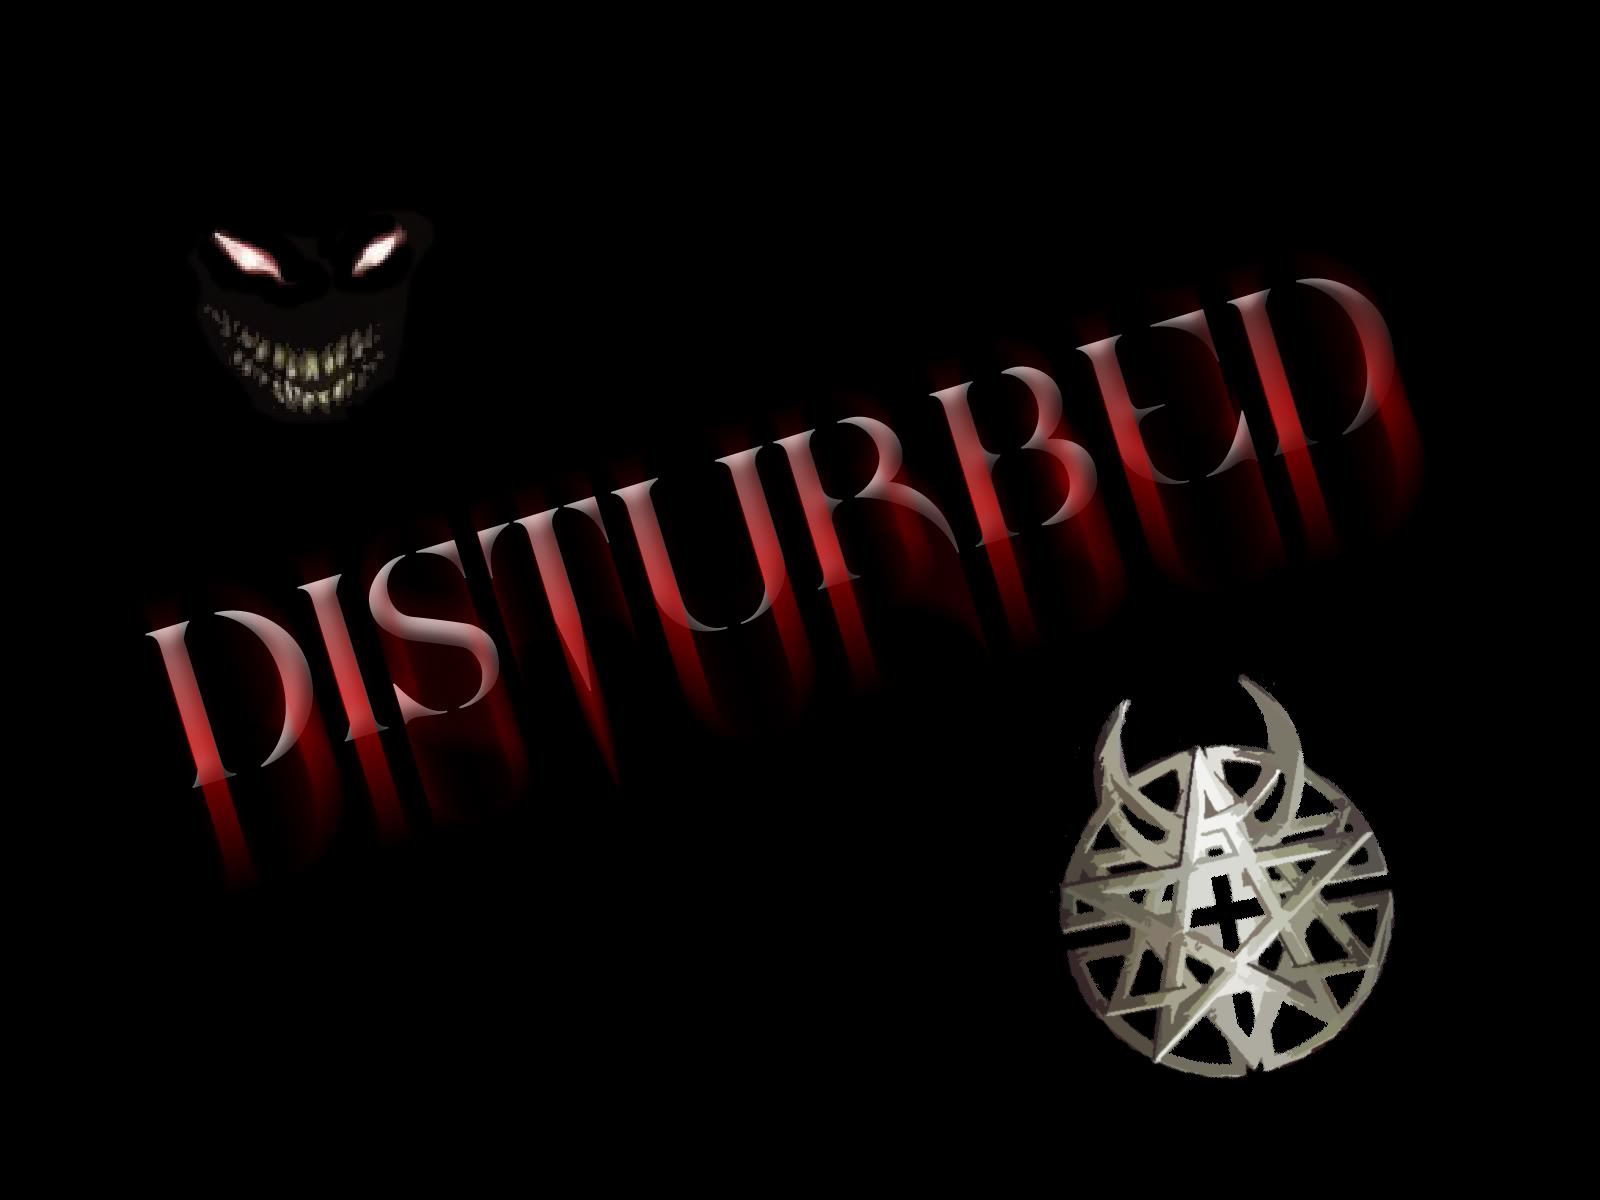 Disturbed 10k FistsBelieve Wallpaper photo Disturbedwallpaperjpg 1600x1200